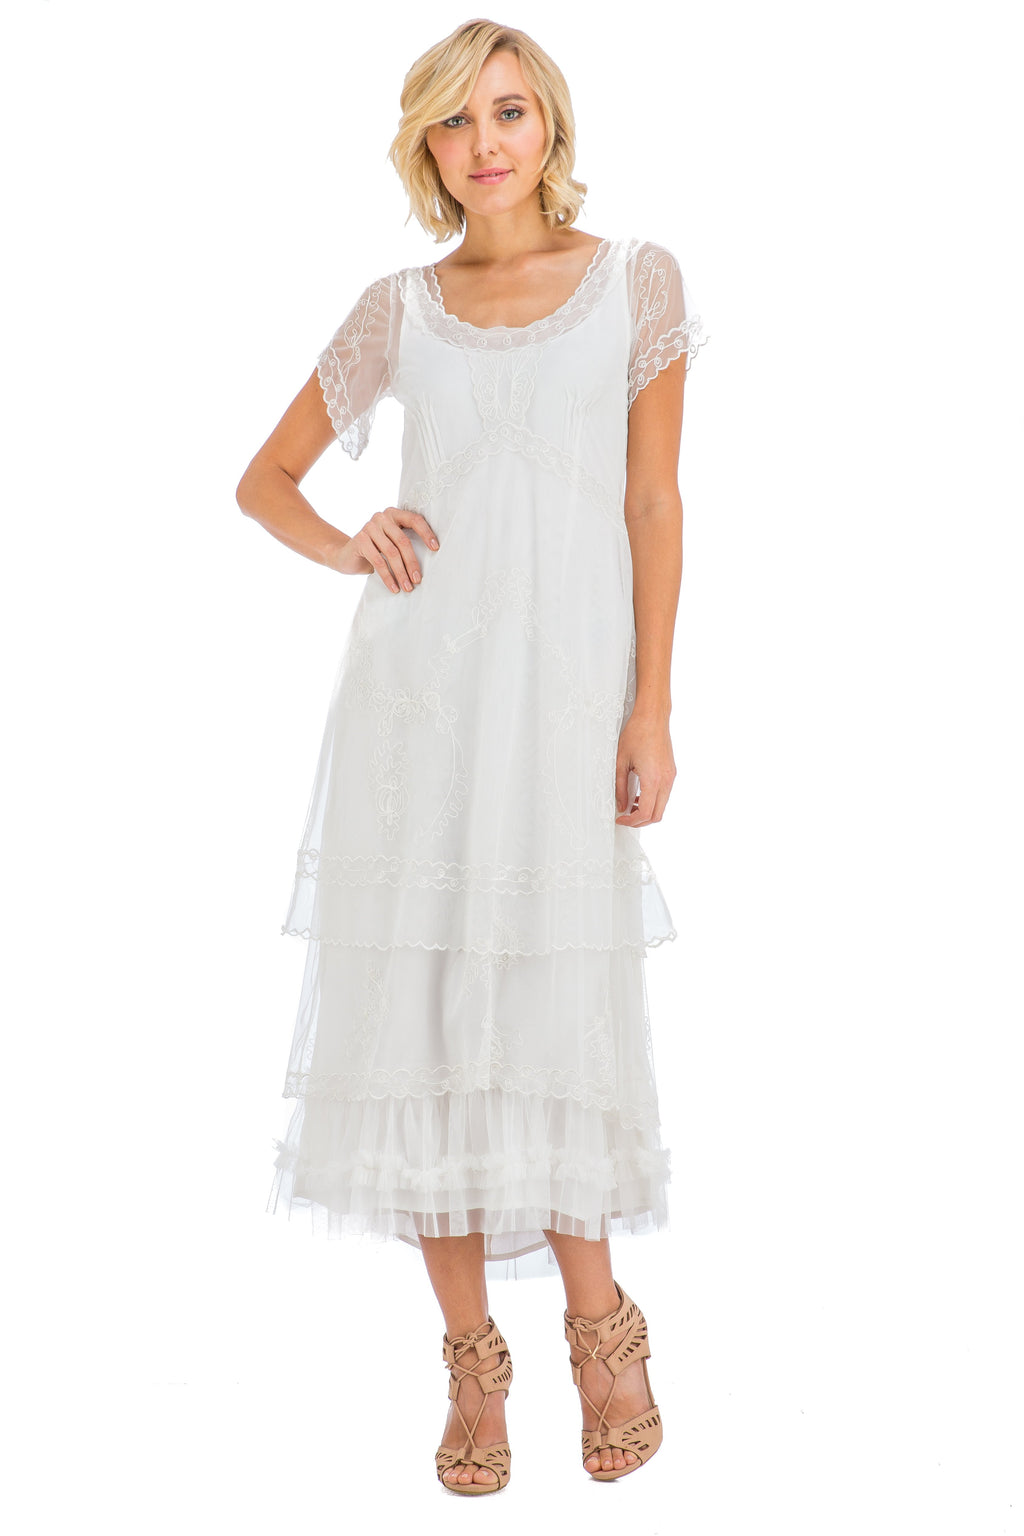 Nataya 1920's Vintage Inspired Dress - shop-blanches-place